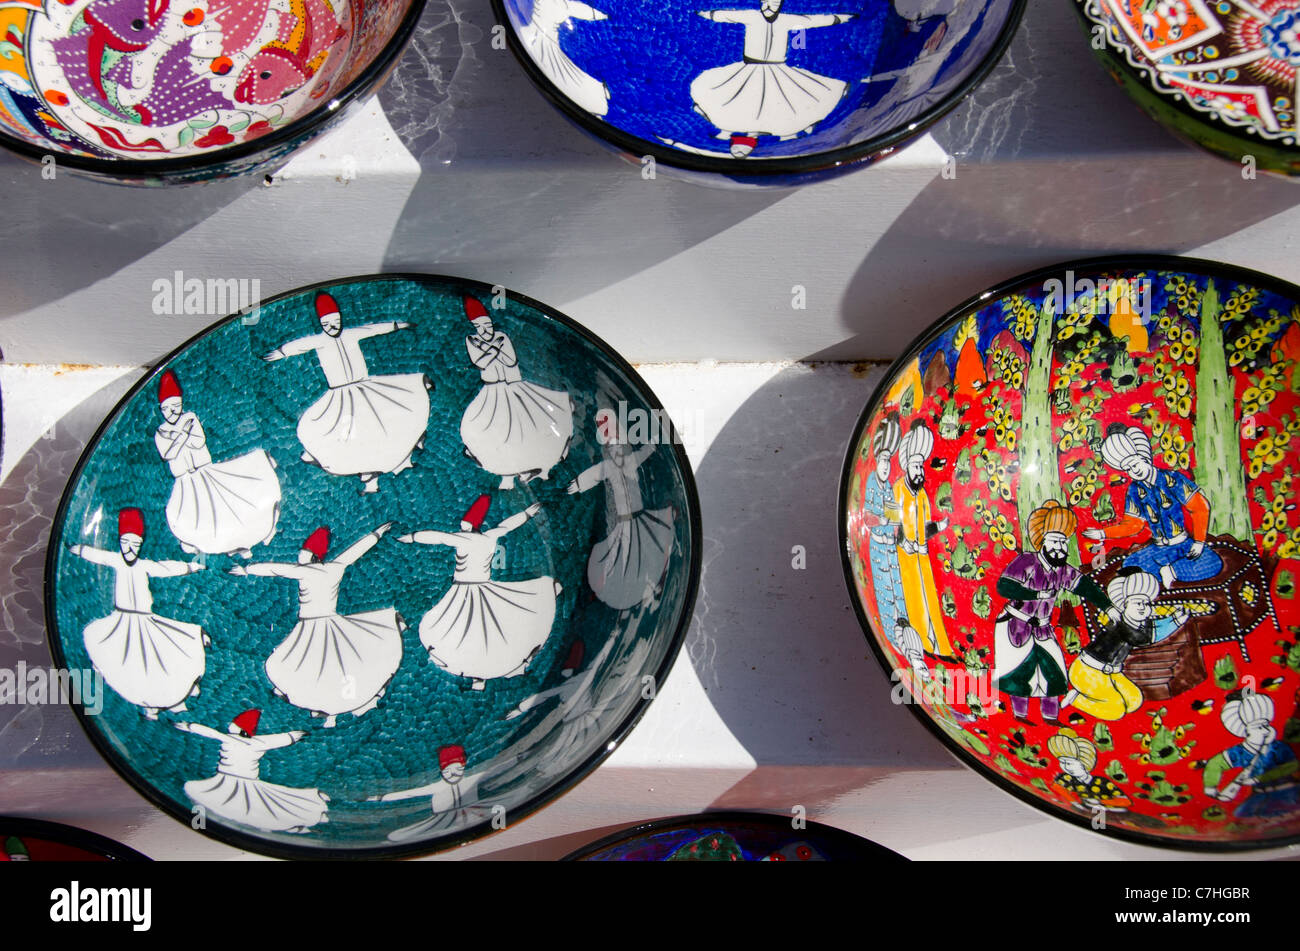 Turkey, Istanbul. Colorful hand painted souvenir pottery, some with whirling dervish design. - Stock Image